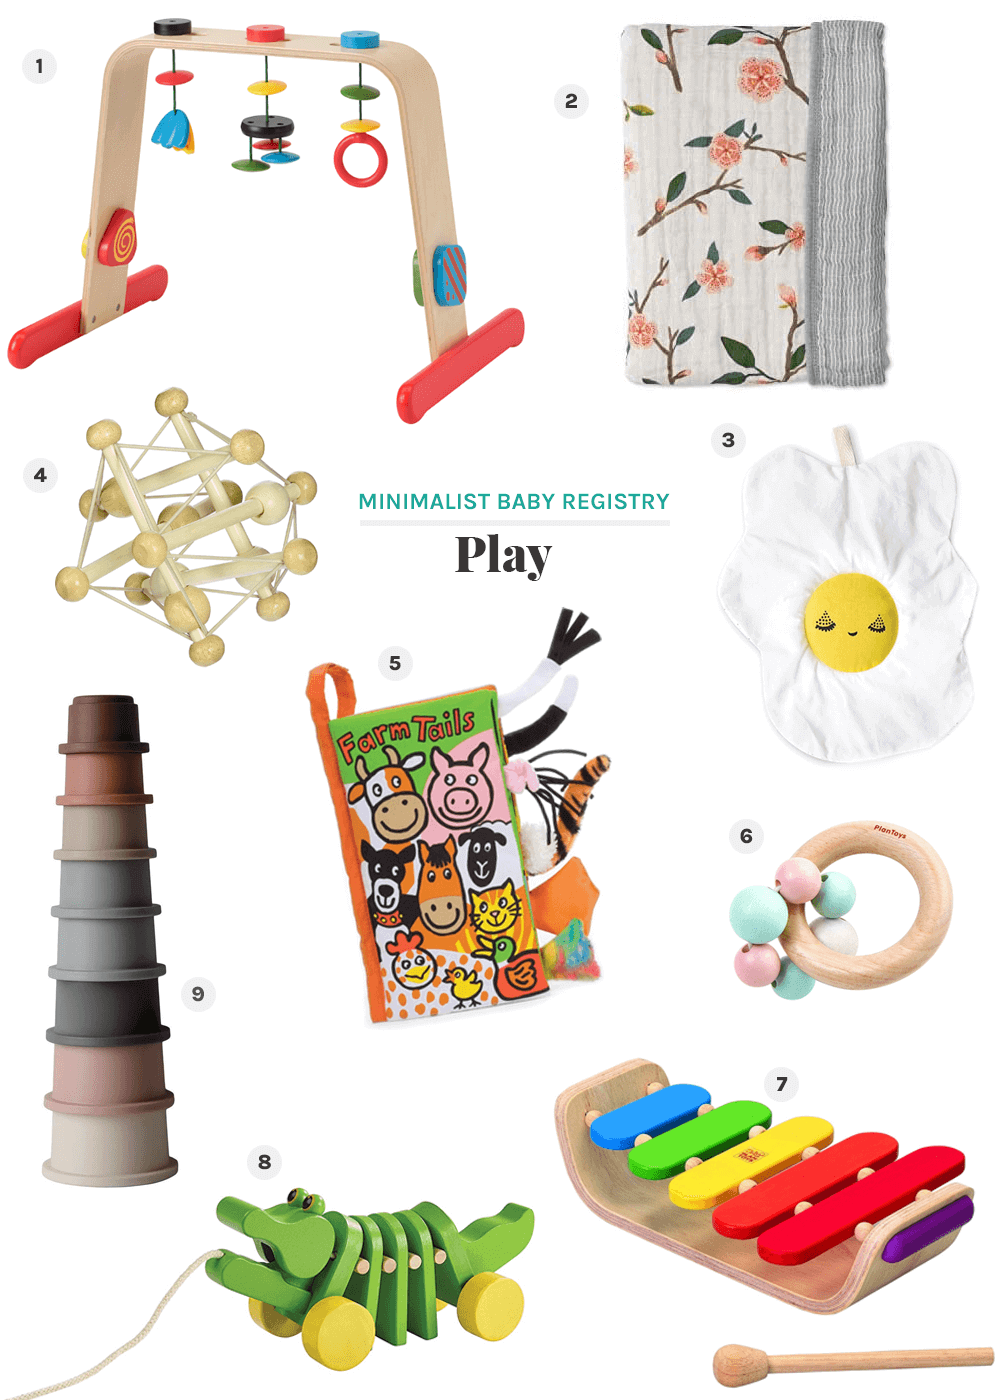 play minimalist baby registry from the faux martha